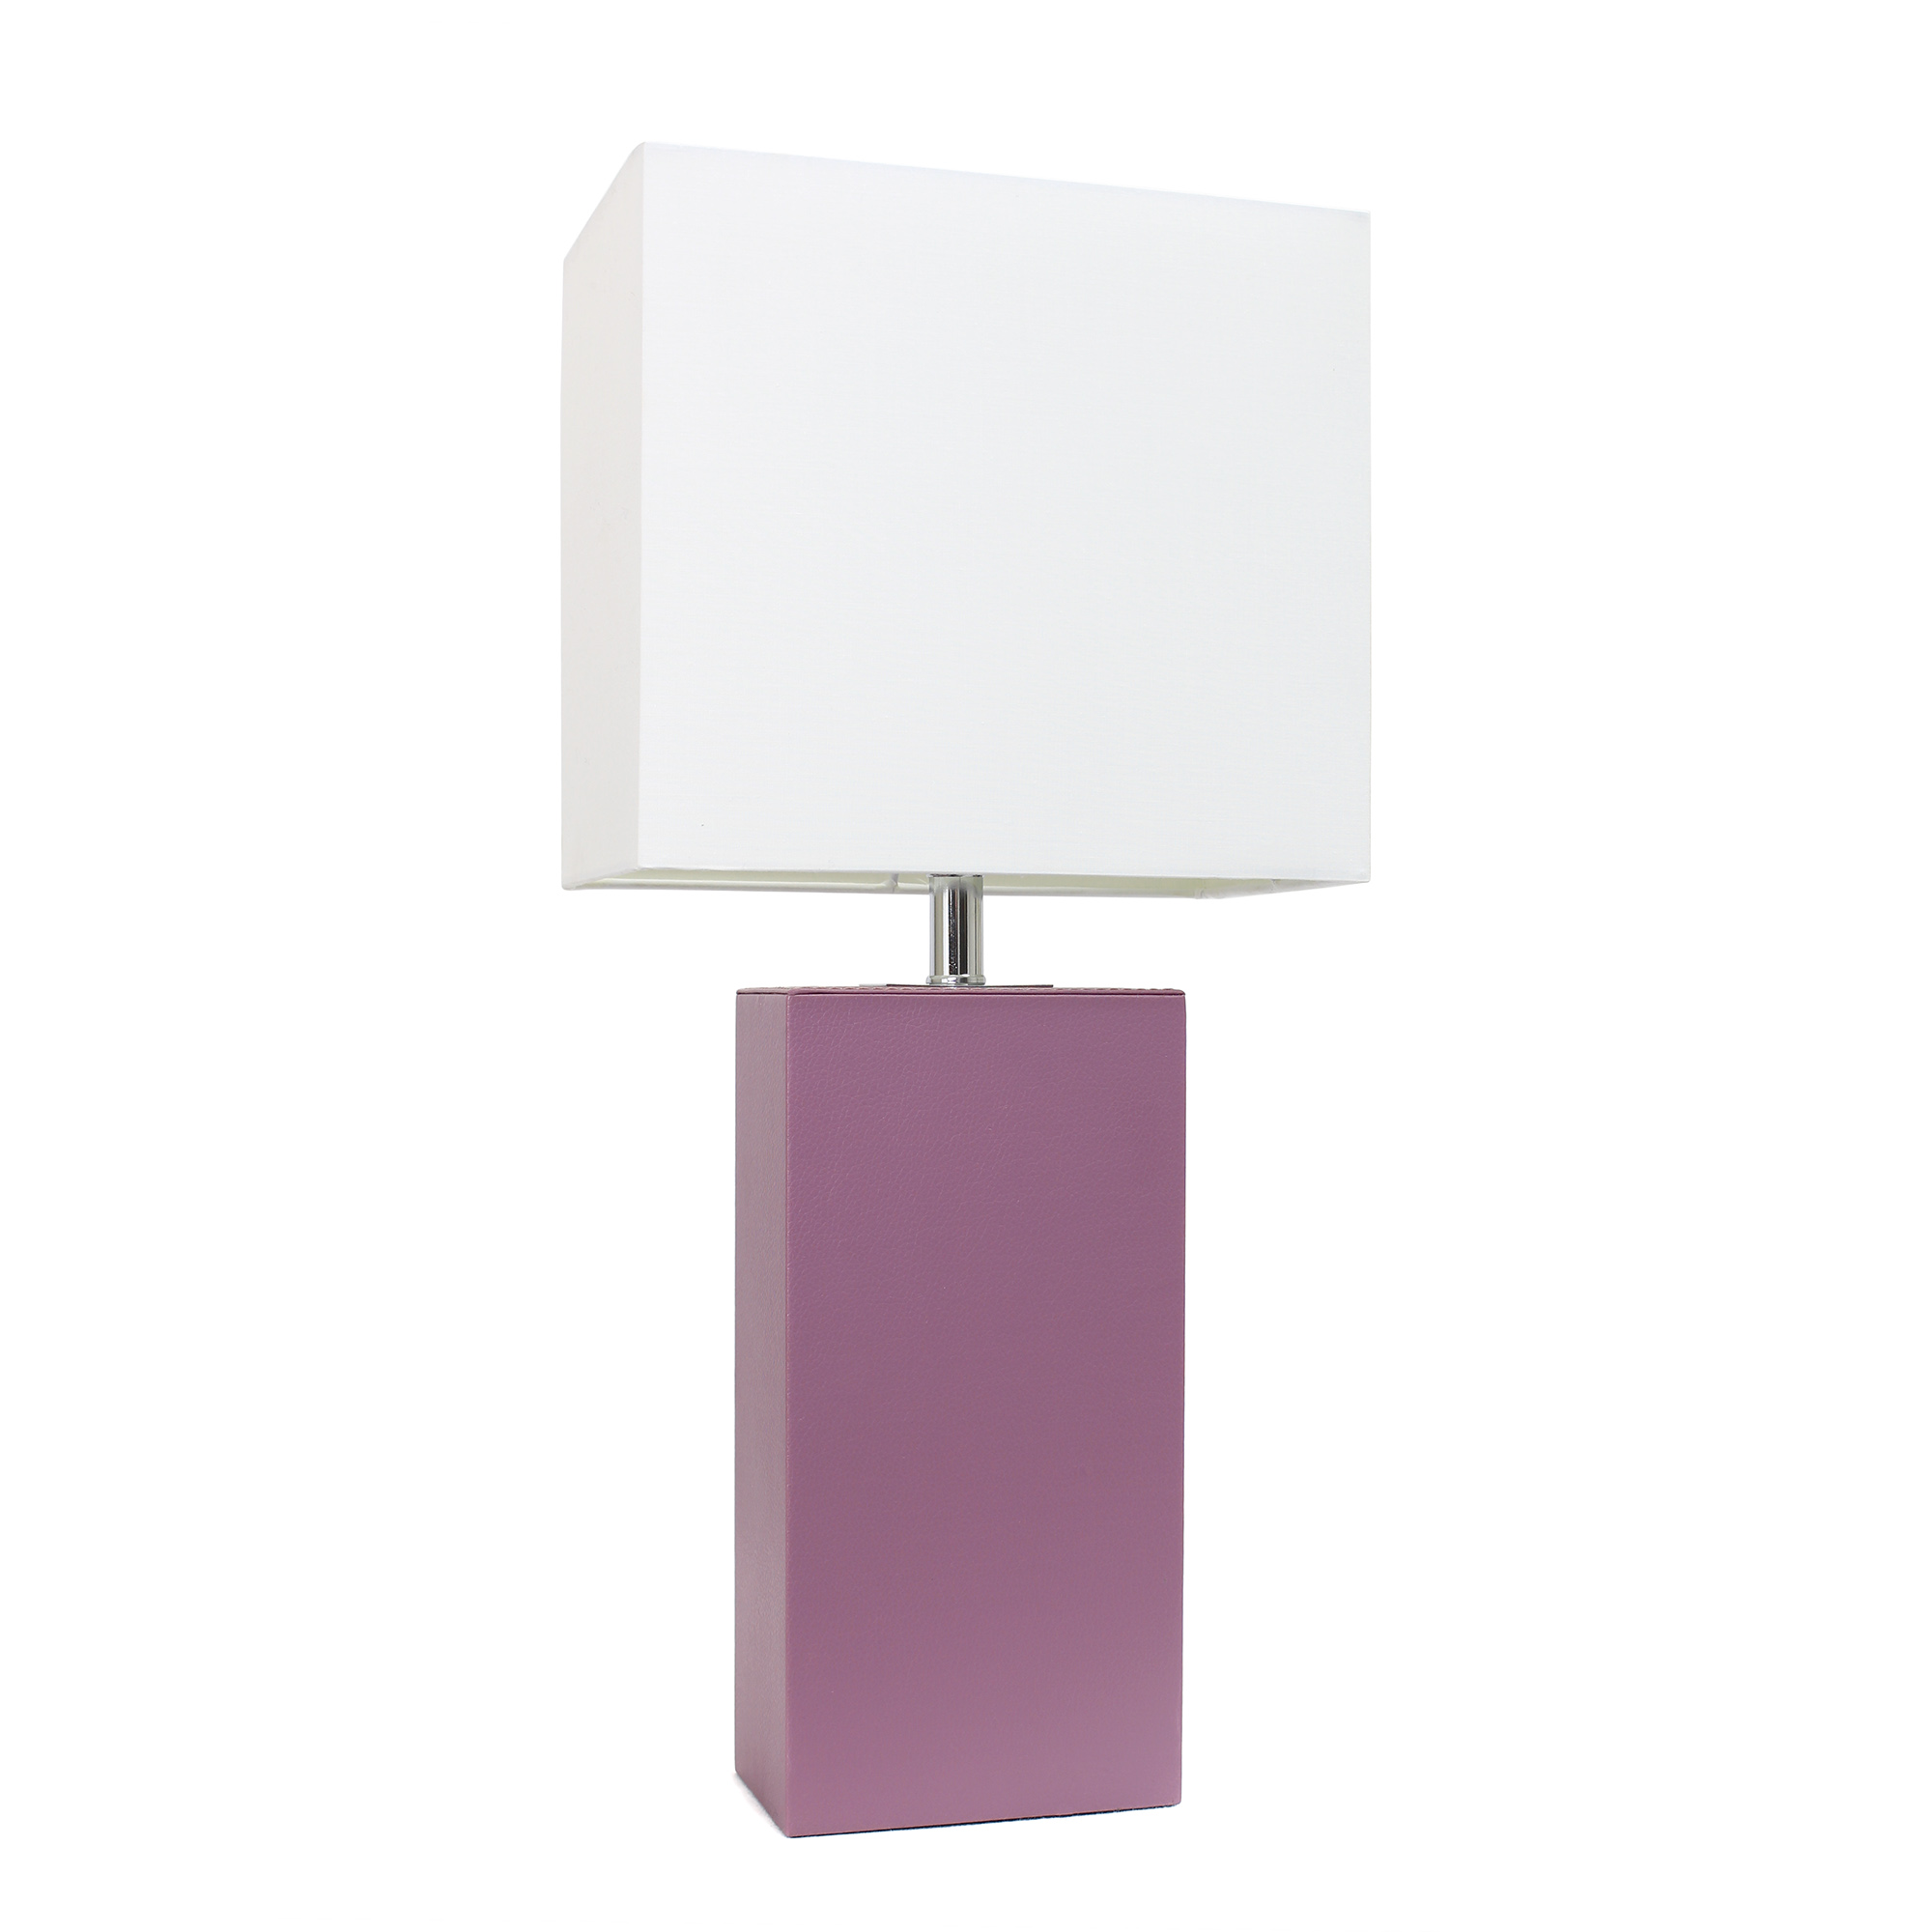 Elegant Designs Modern Leather Table Lamp with White Fabric Shade, Purple